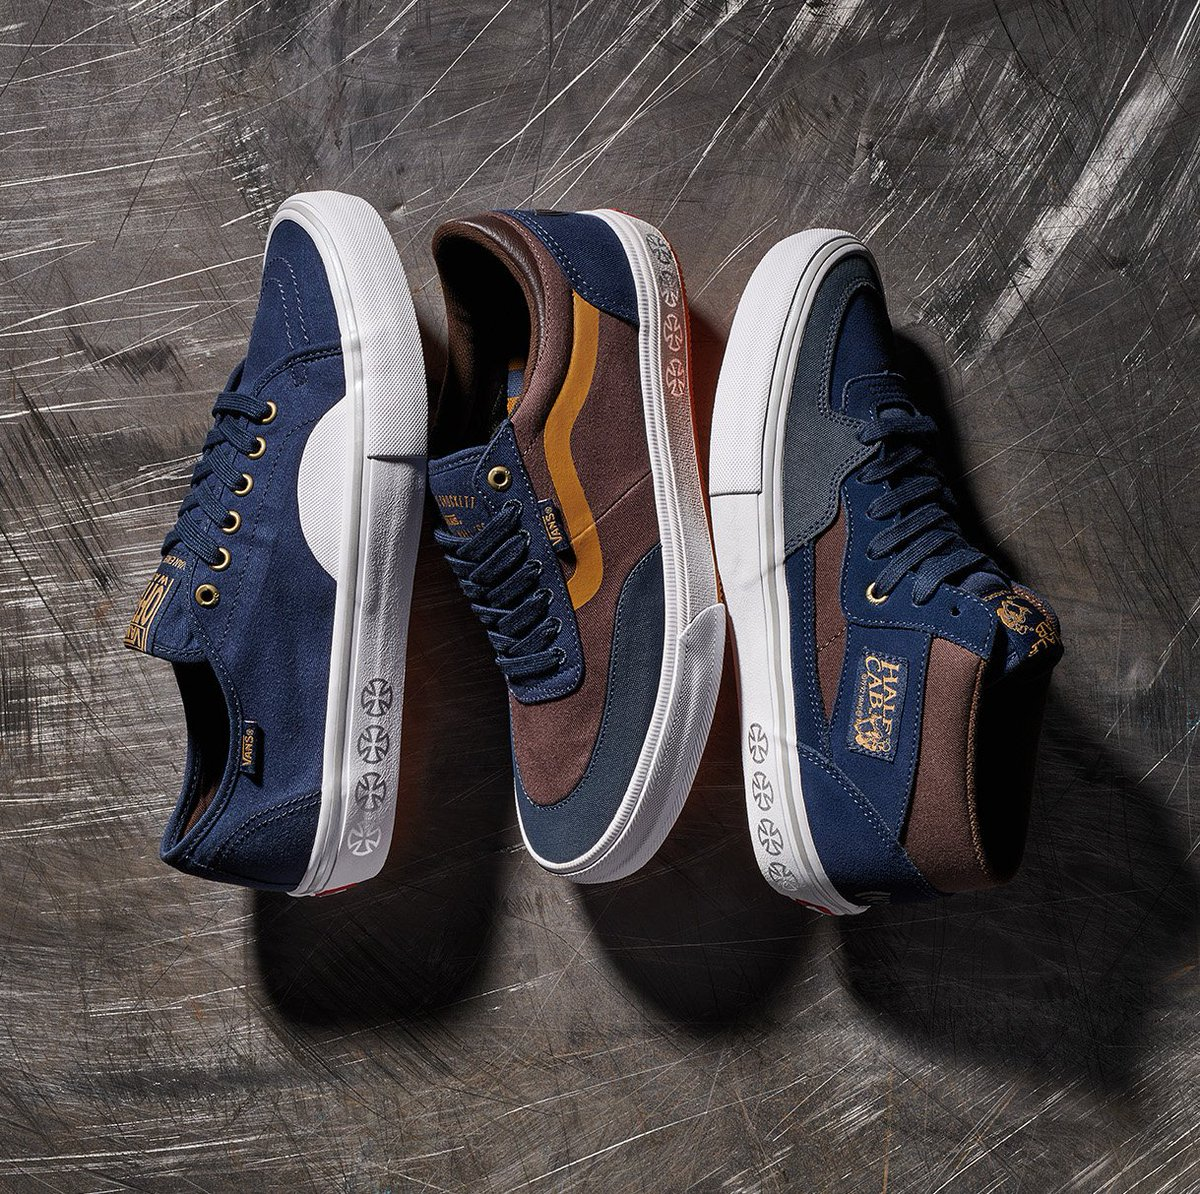 9117562ba4 The Vans X  IndpndtTruckCo collection is now available in new pieces and  colors. Check out the full line at your local skate shop or on http   vans.eu  ...